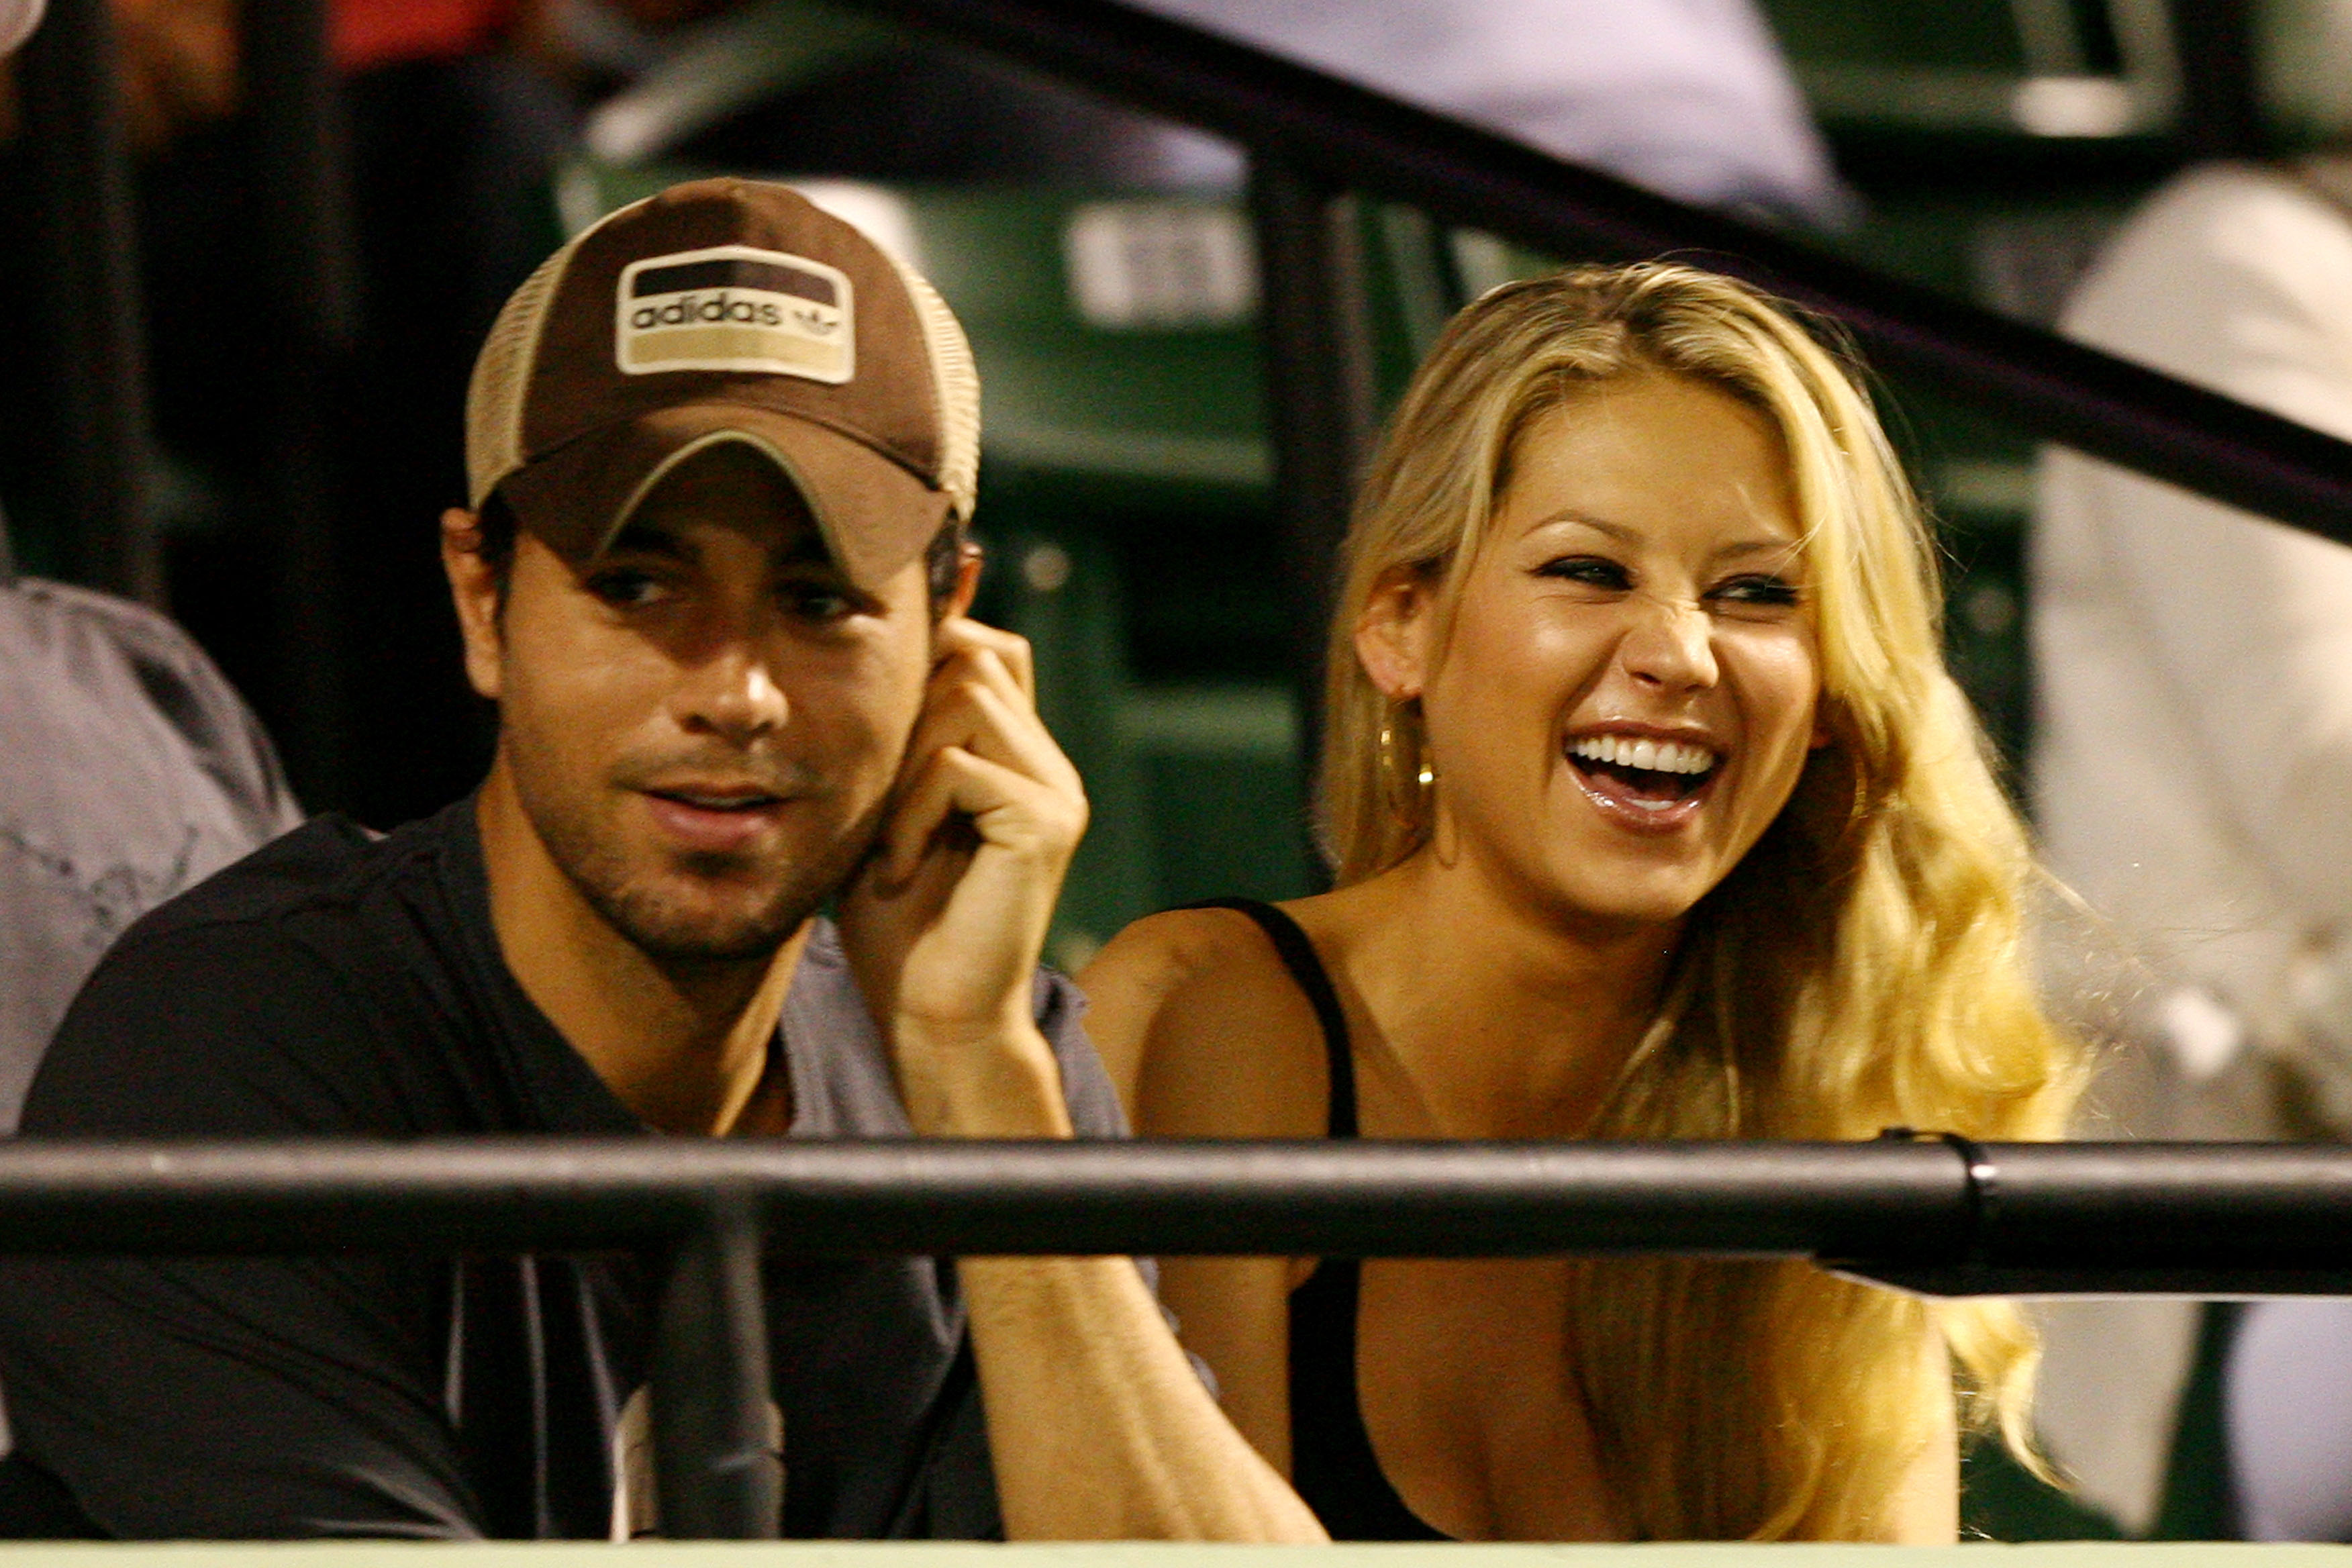 Enrique Iglesias and girlfriend Anna Kournikova watch as Venus Williams plays her semifinal match against Serena Williams at the Sony Ericsson Open at the Crandon Park Tennis Center on April 2, 2009, in Key Biscayne, Florida. (Getty Images)